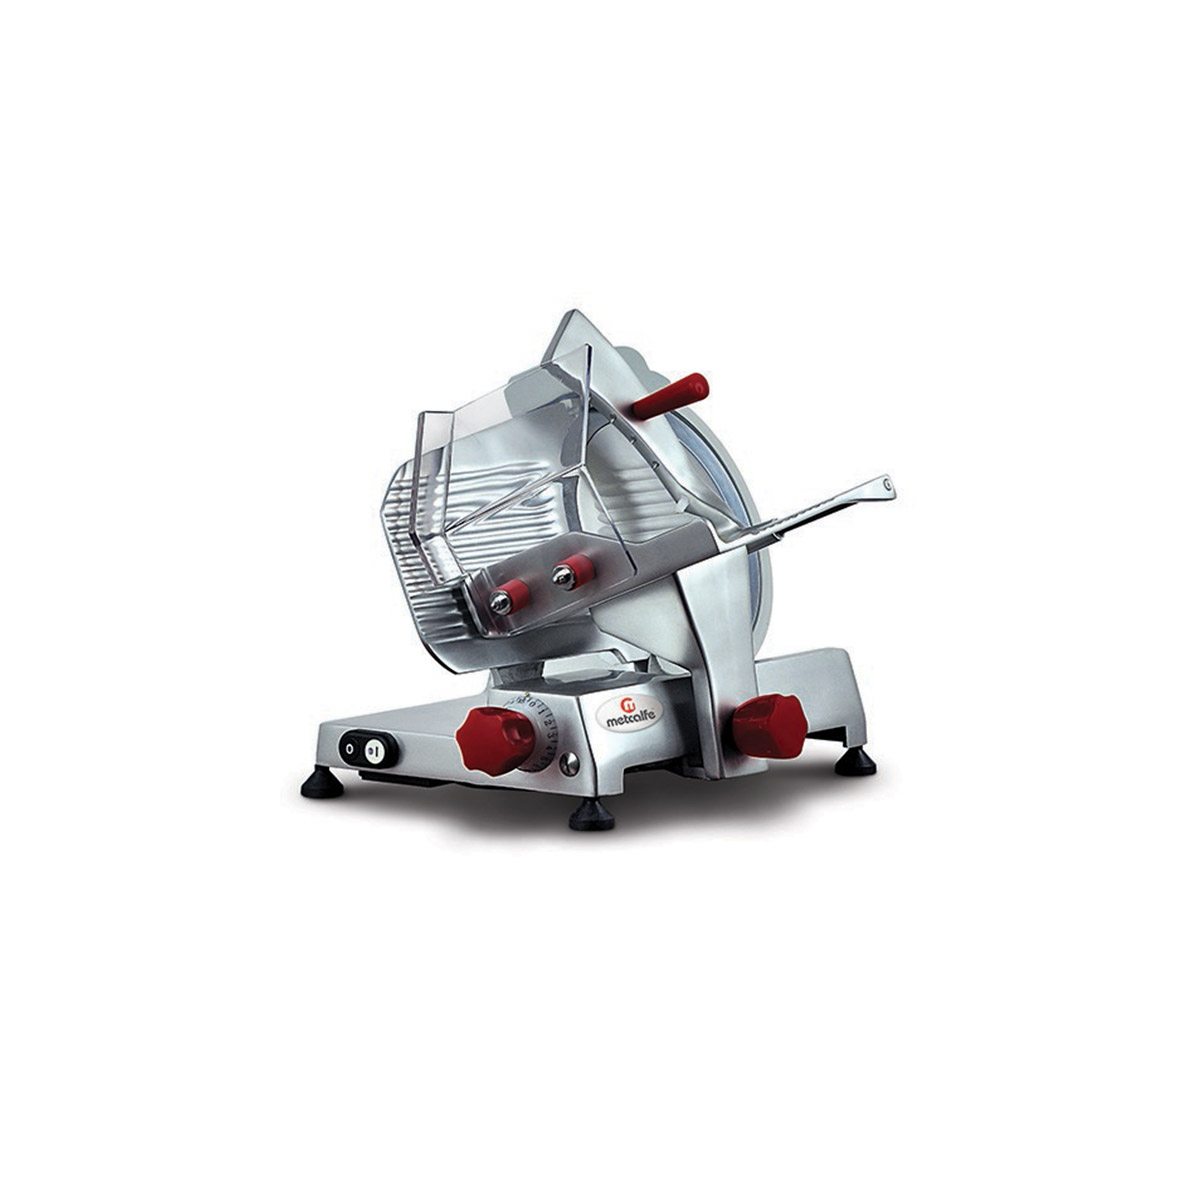 Metcalfe NS220 Medium Duty Gravity Feed Slicer